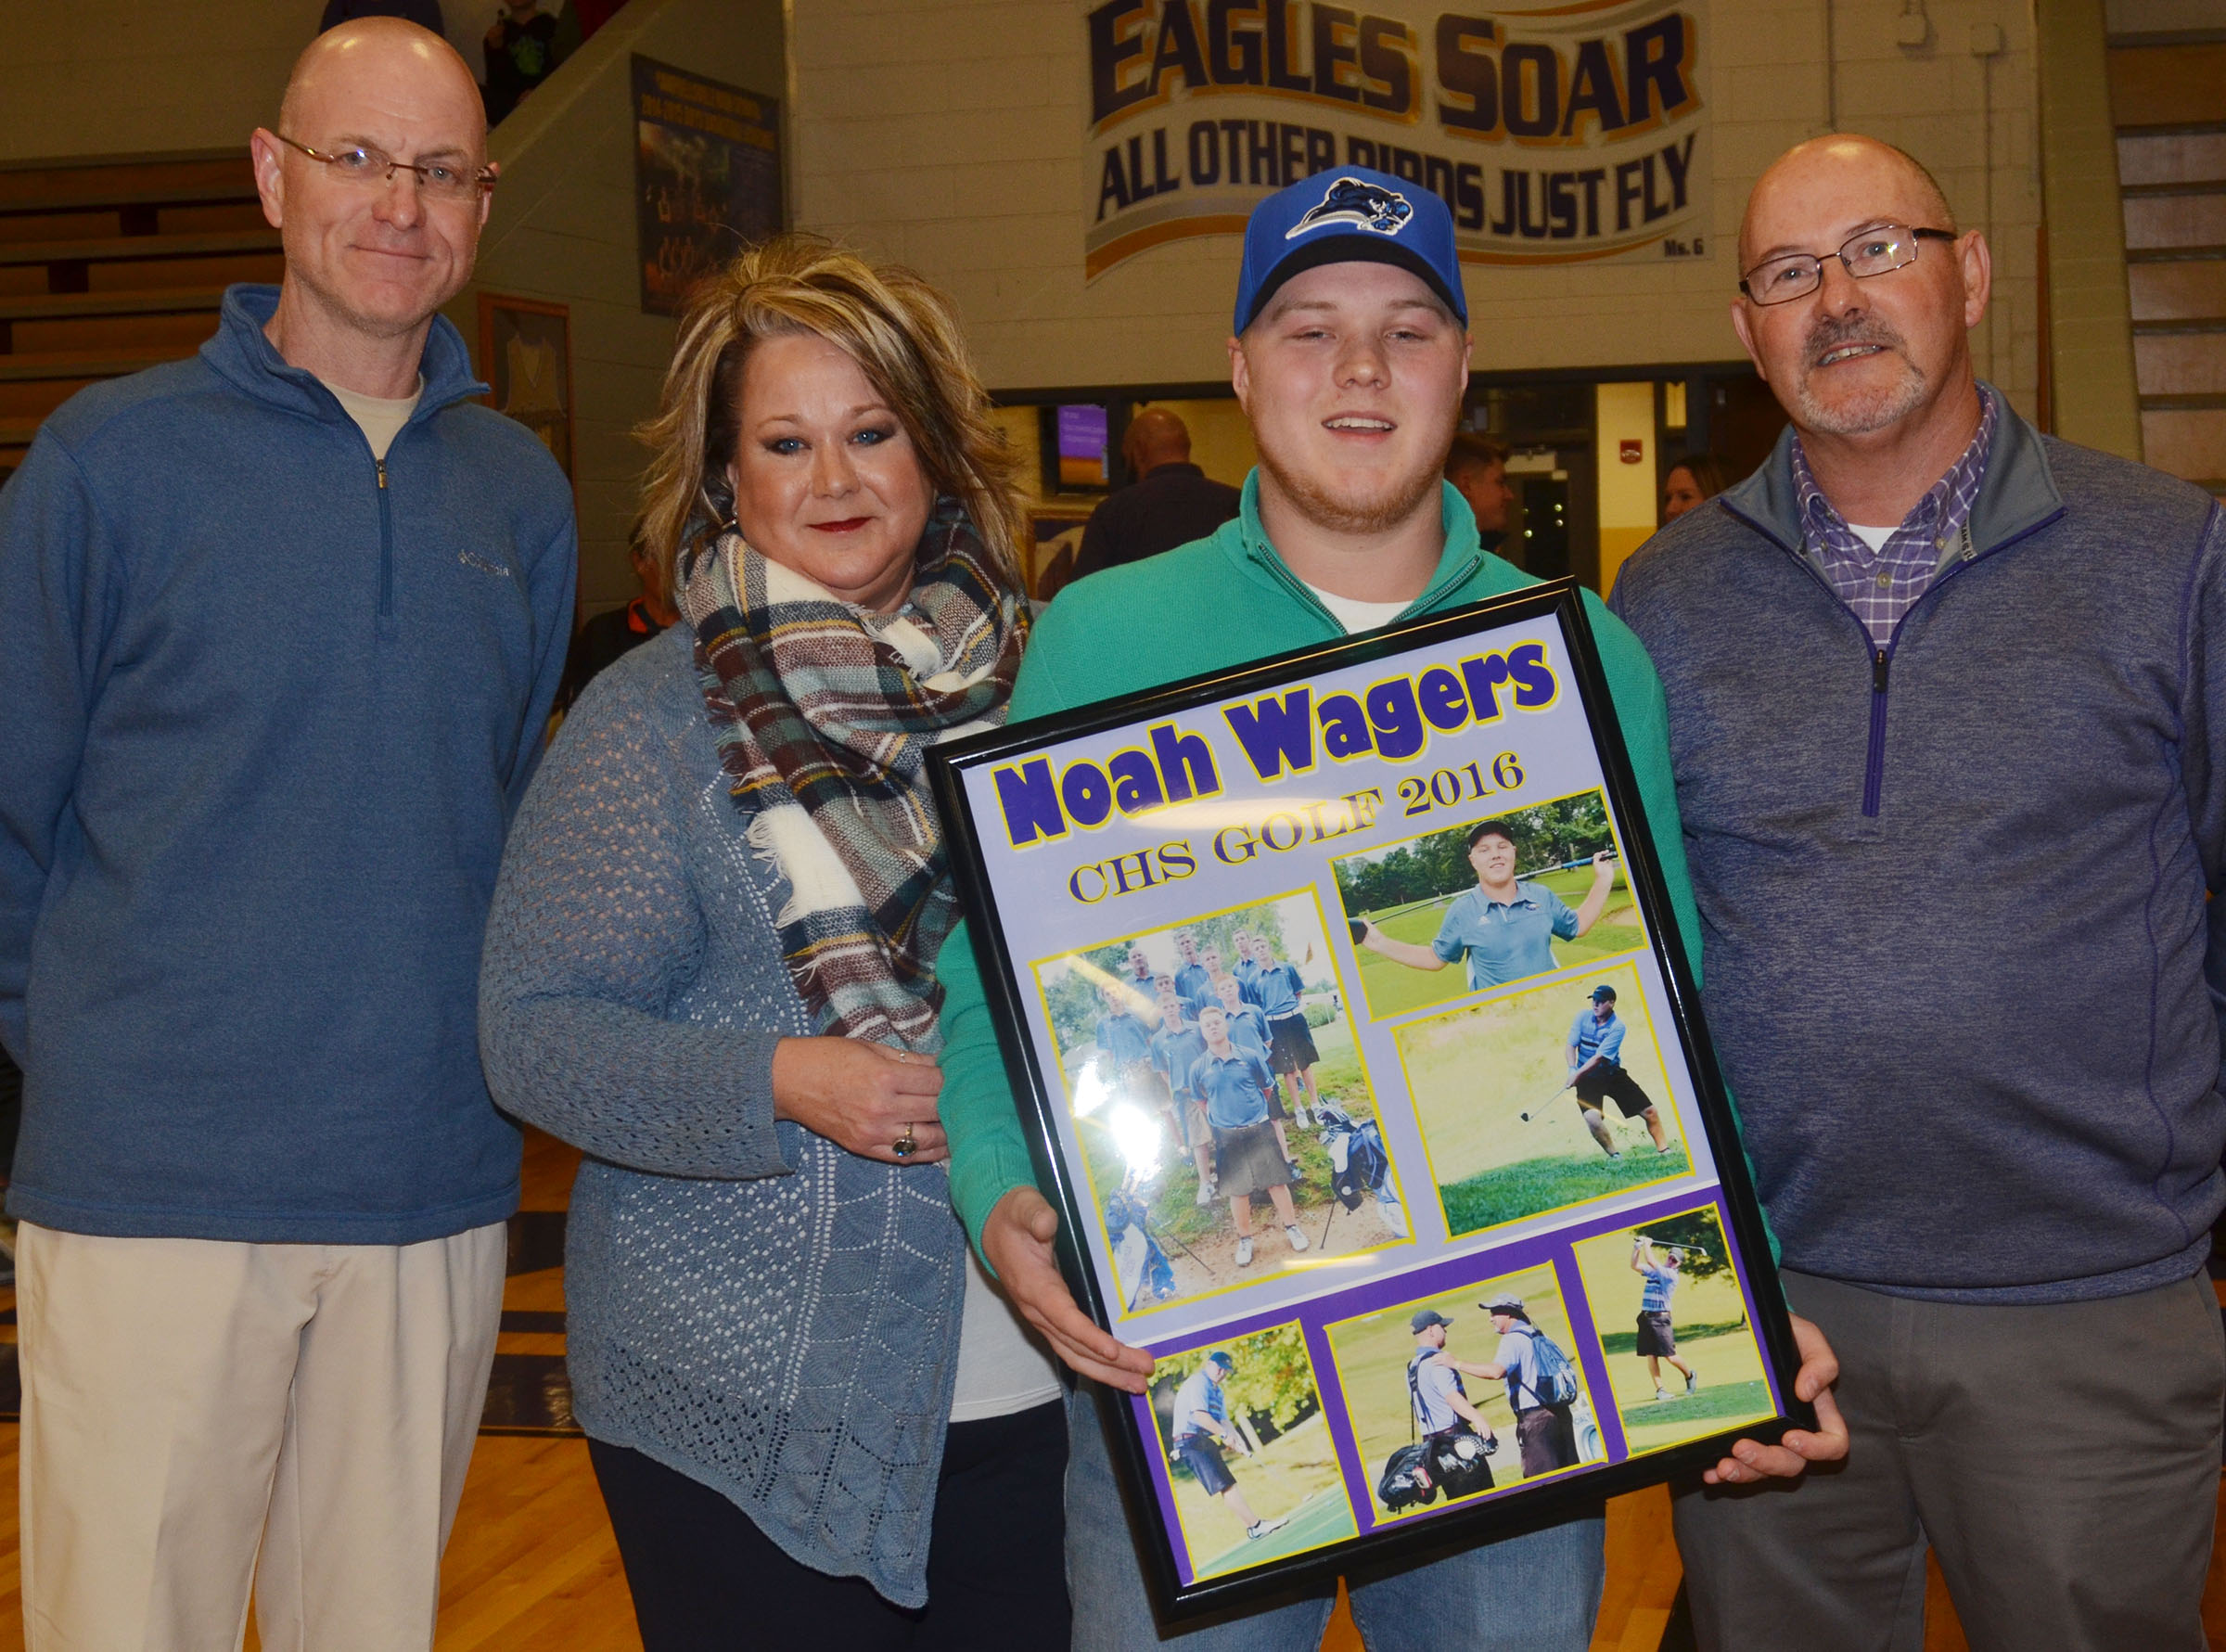 CHS senior golf player Noah Wagers is honored. From left are his parents Steve and Kim Wagers, Noah and CHS boys' golf coach Jim Ward.